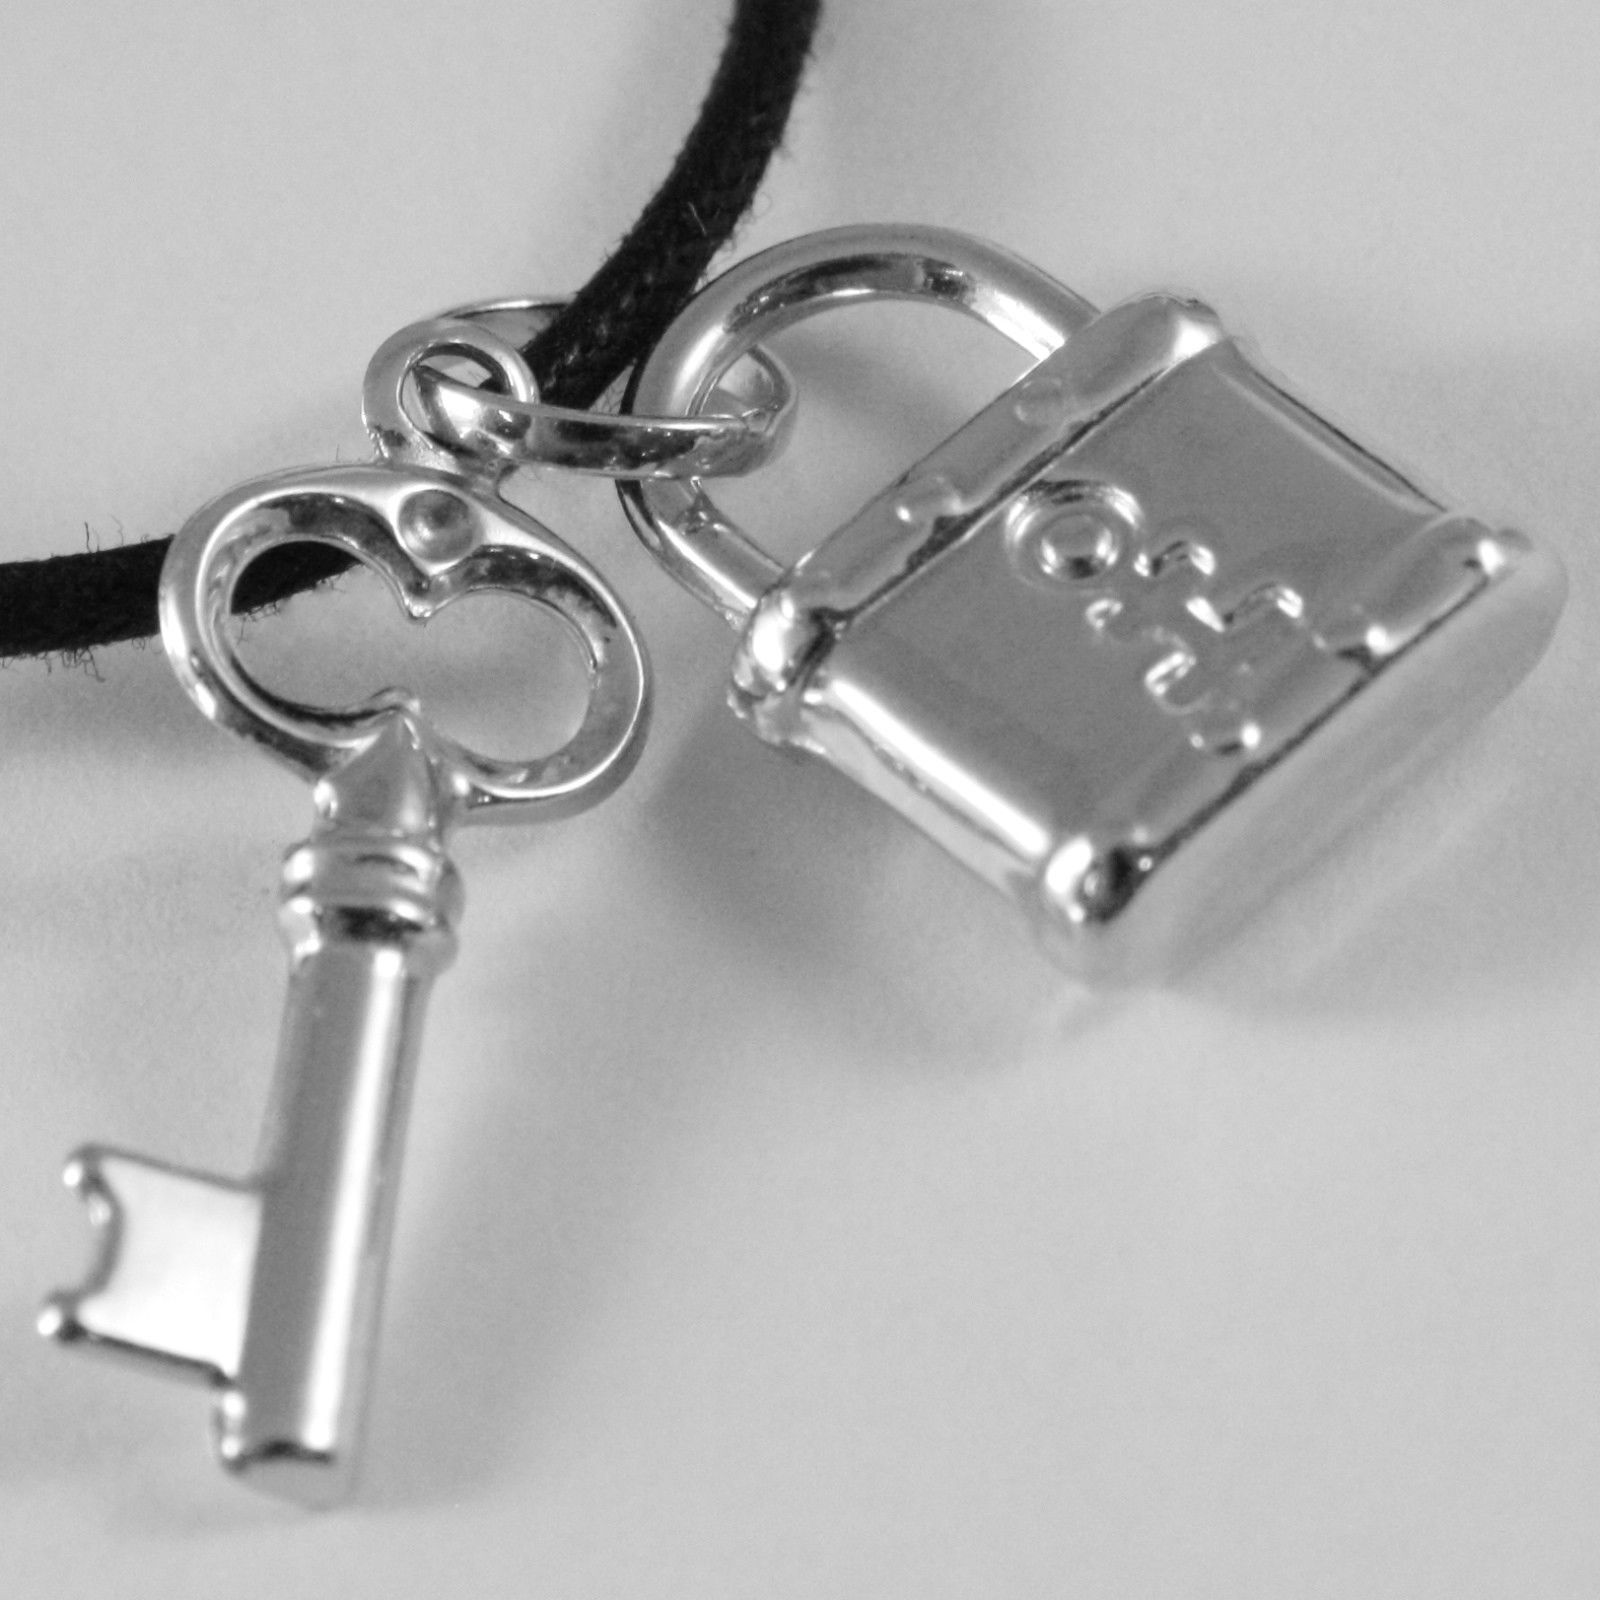 18K WHITE GOLD ROUNDED PADLOCK AND KEY PENDANT CHARM 27 MM SMOOTH MADE IN ITALY